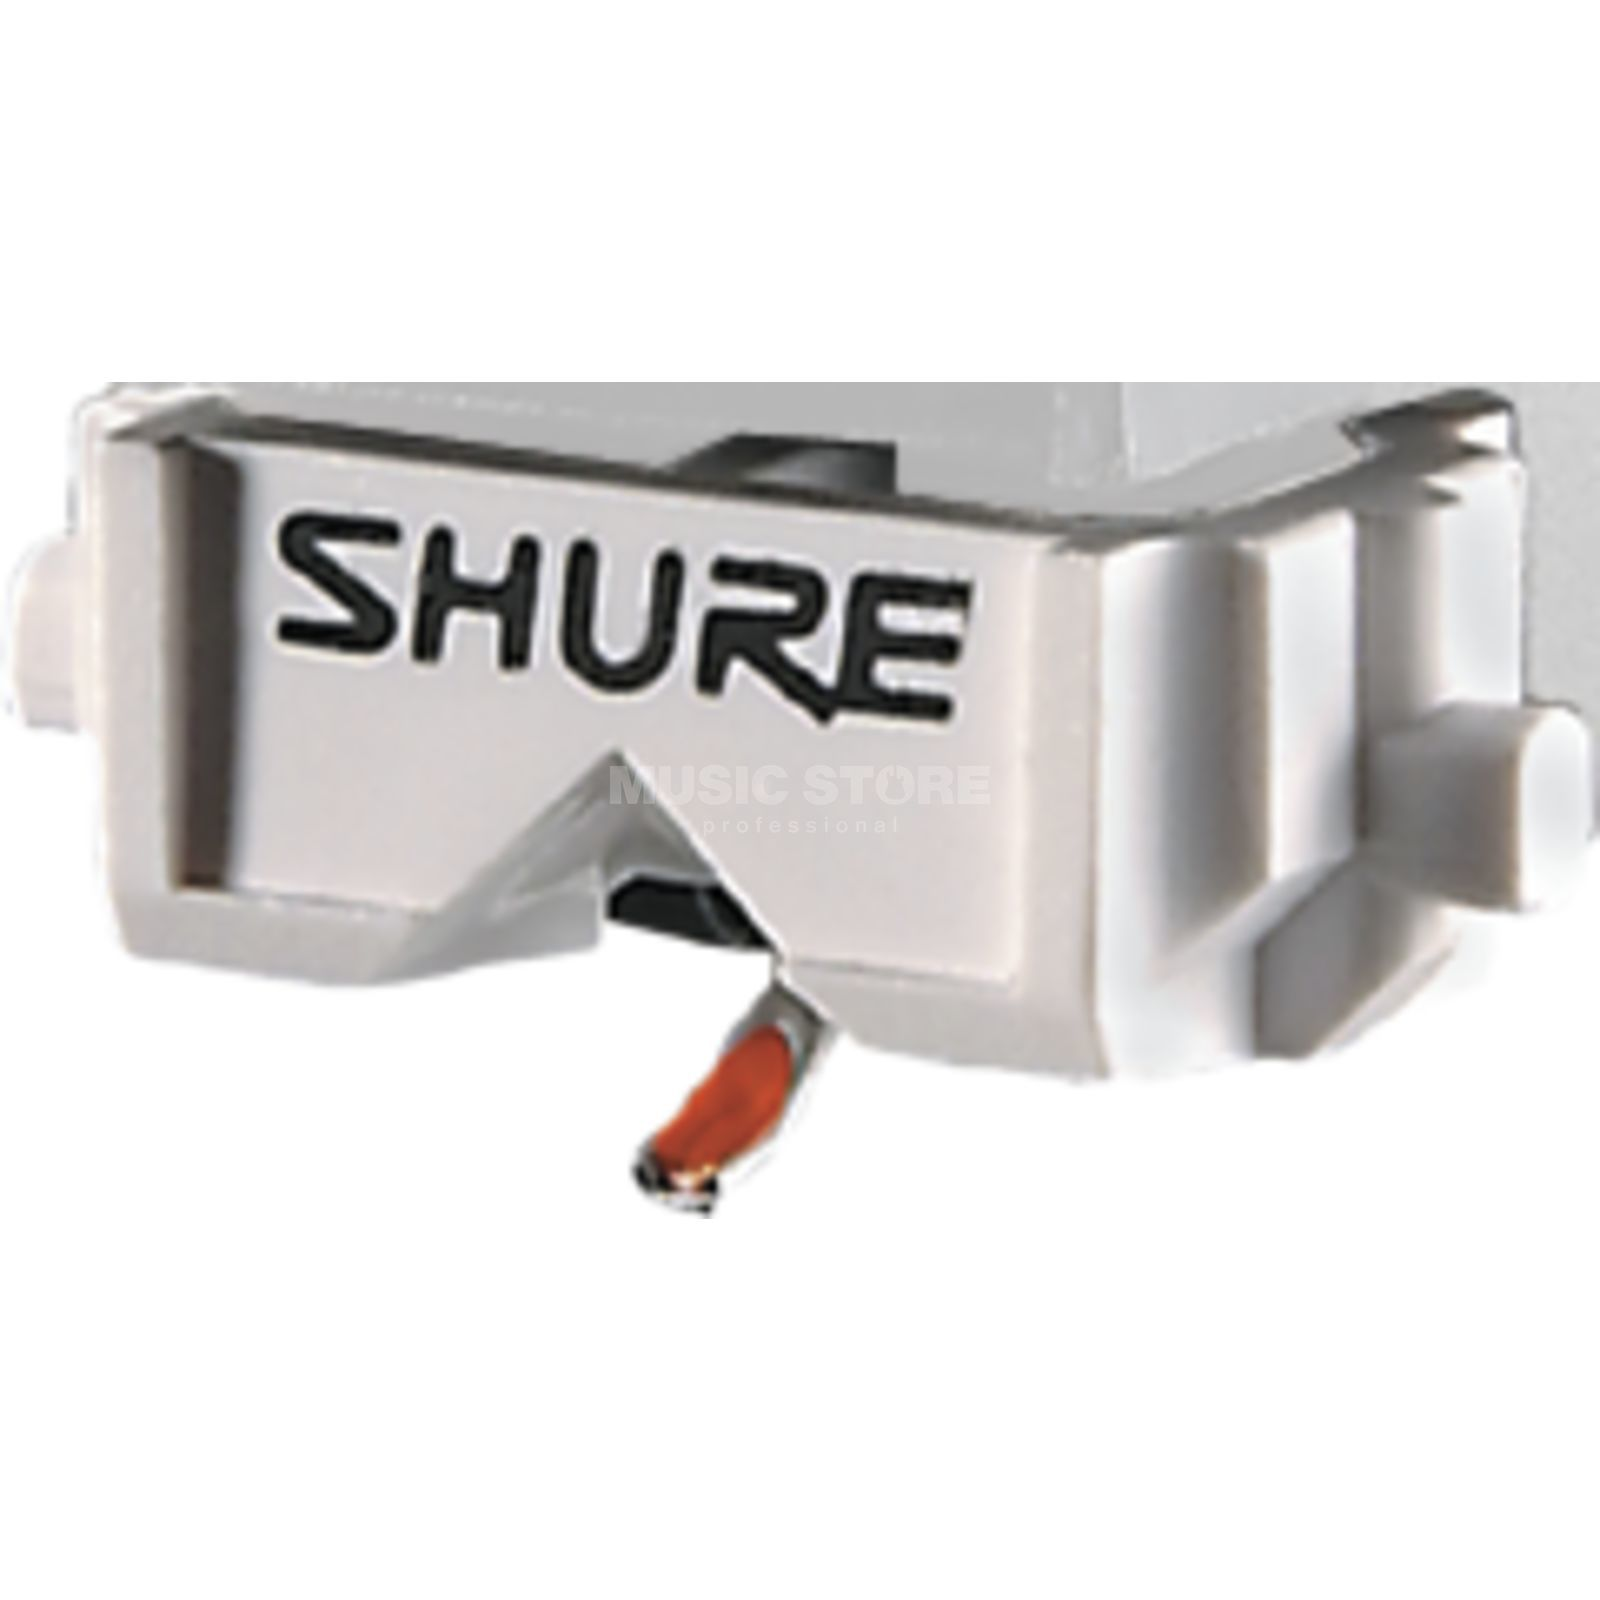 Shure N44-7Z Replacement Stylus for  M44-7 Cartridge   Produktbillede